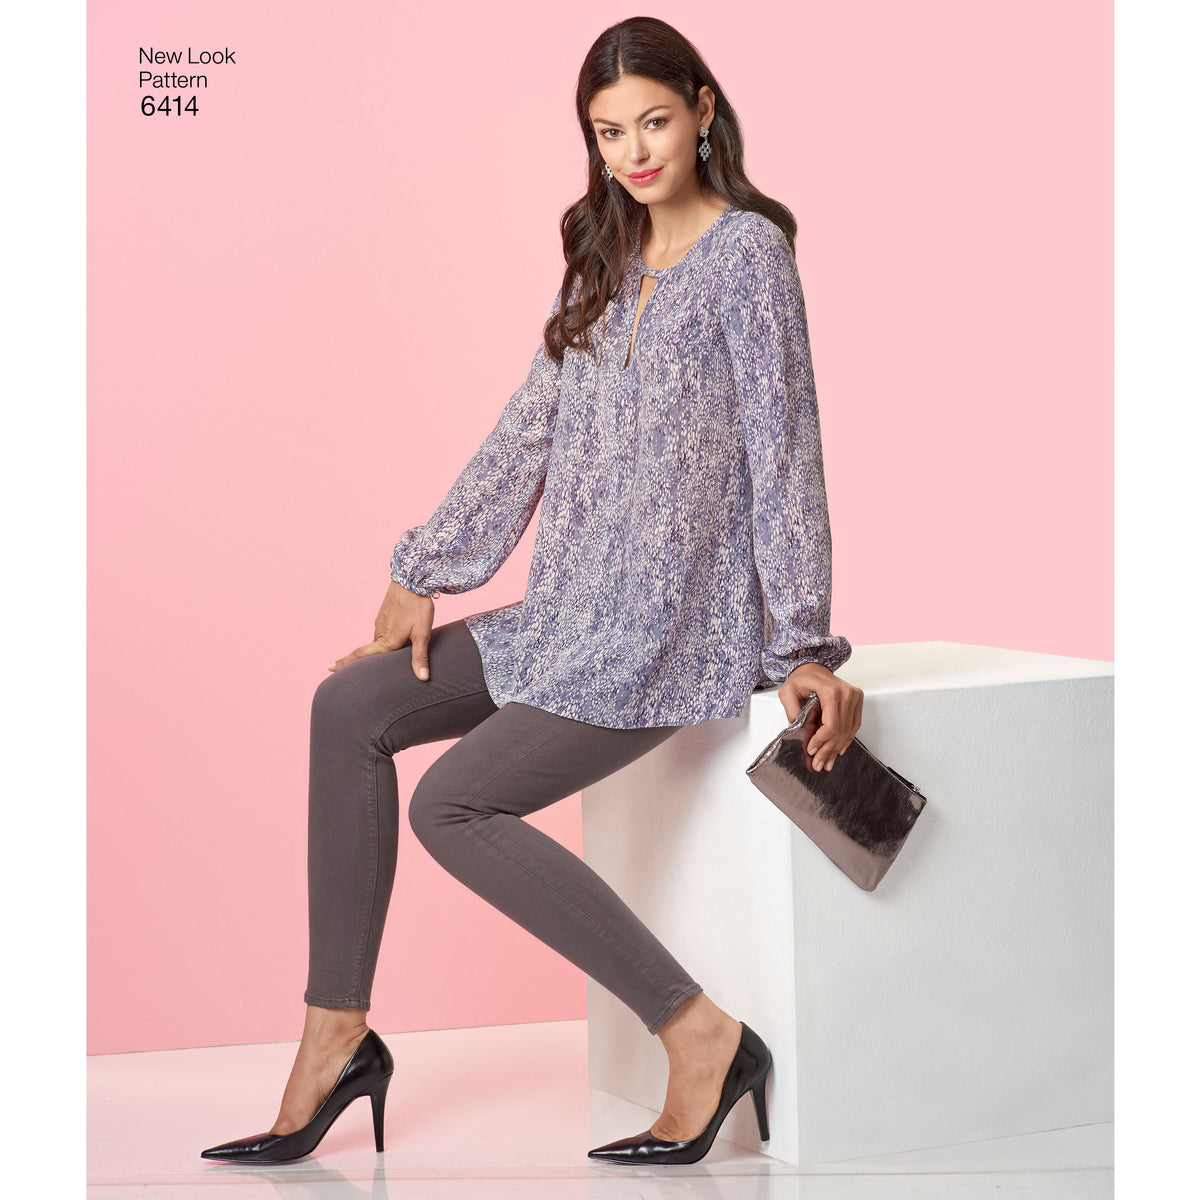 6414 Misses' Tunic and Top with Neckline Variations